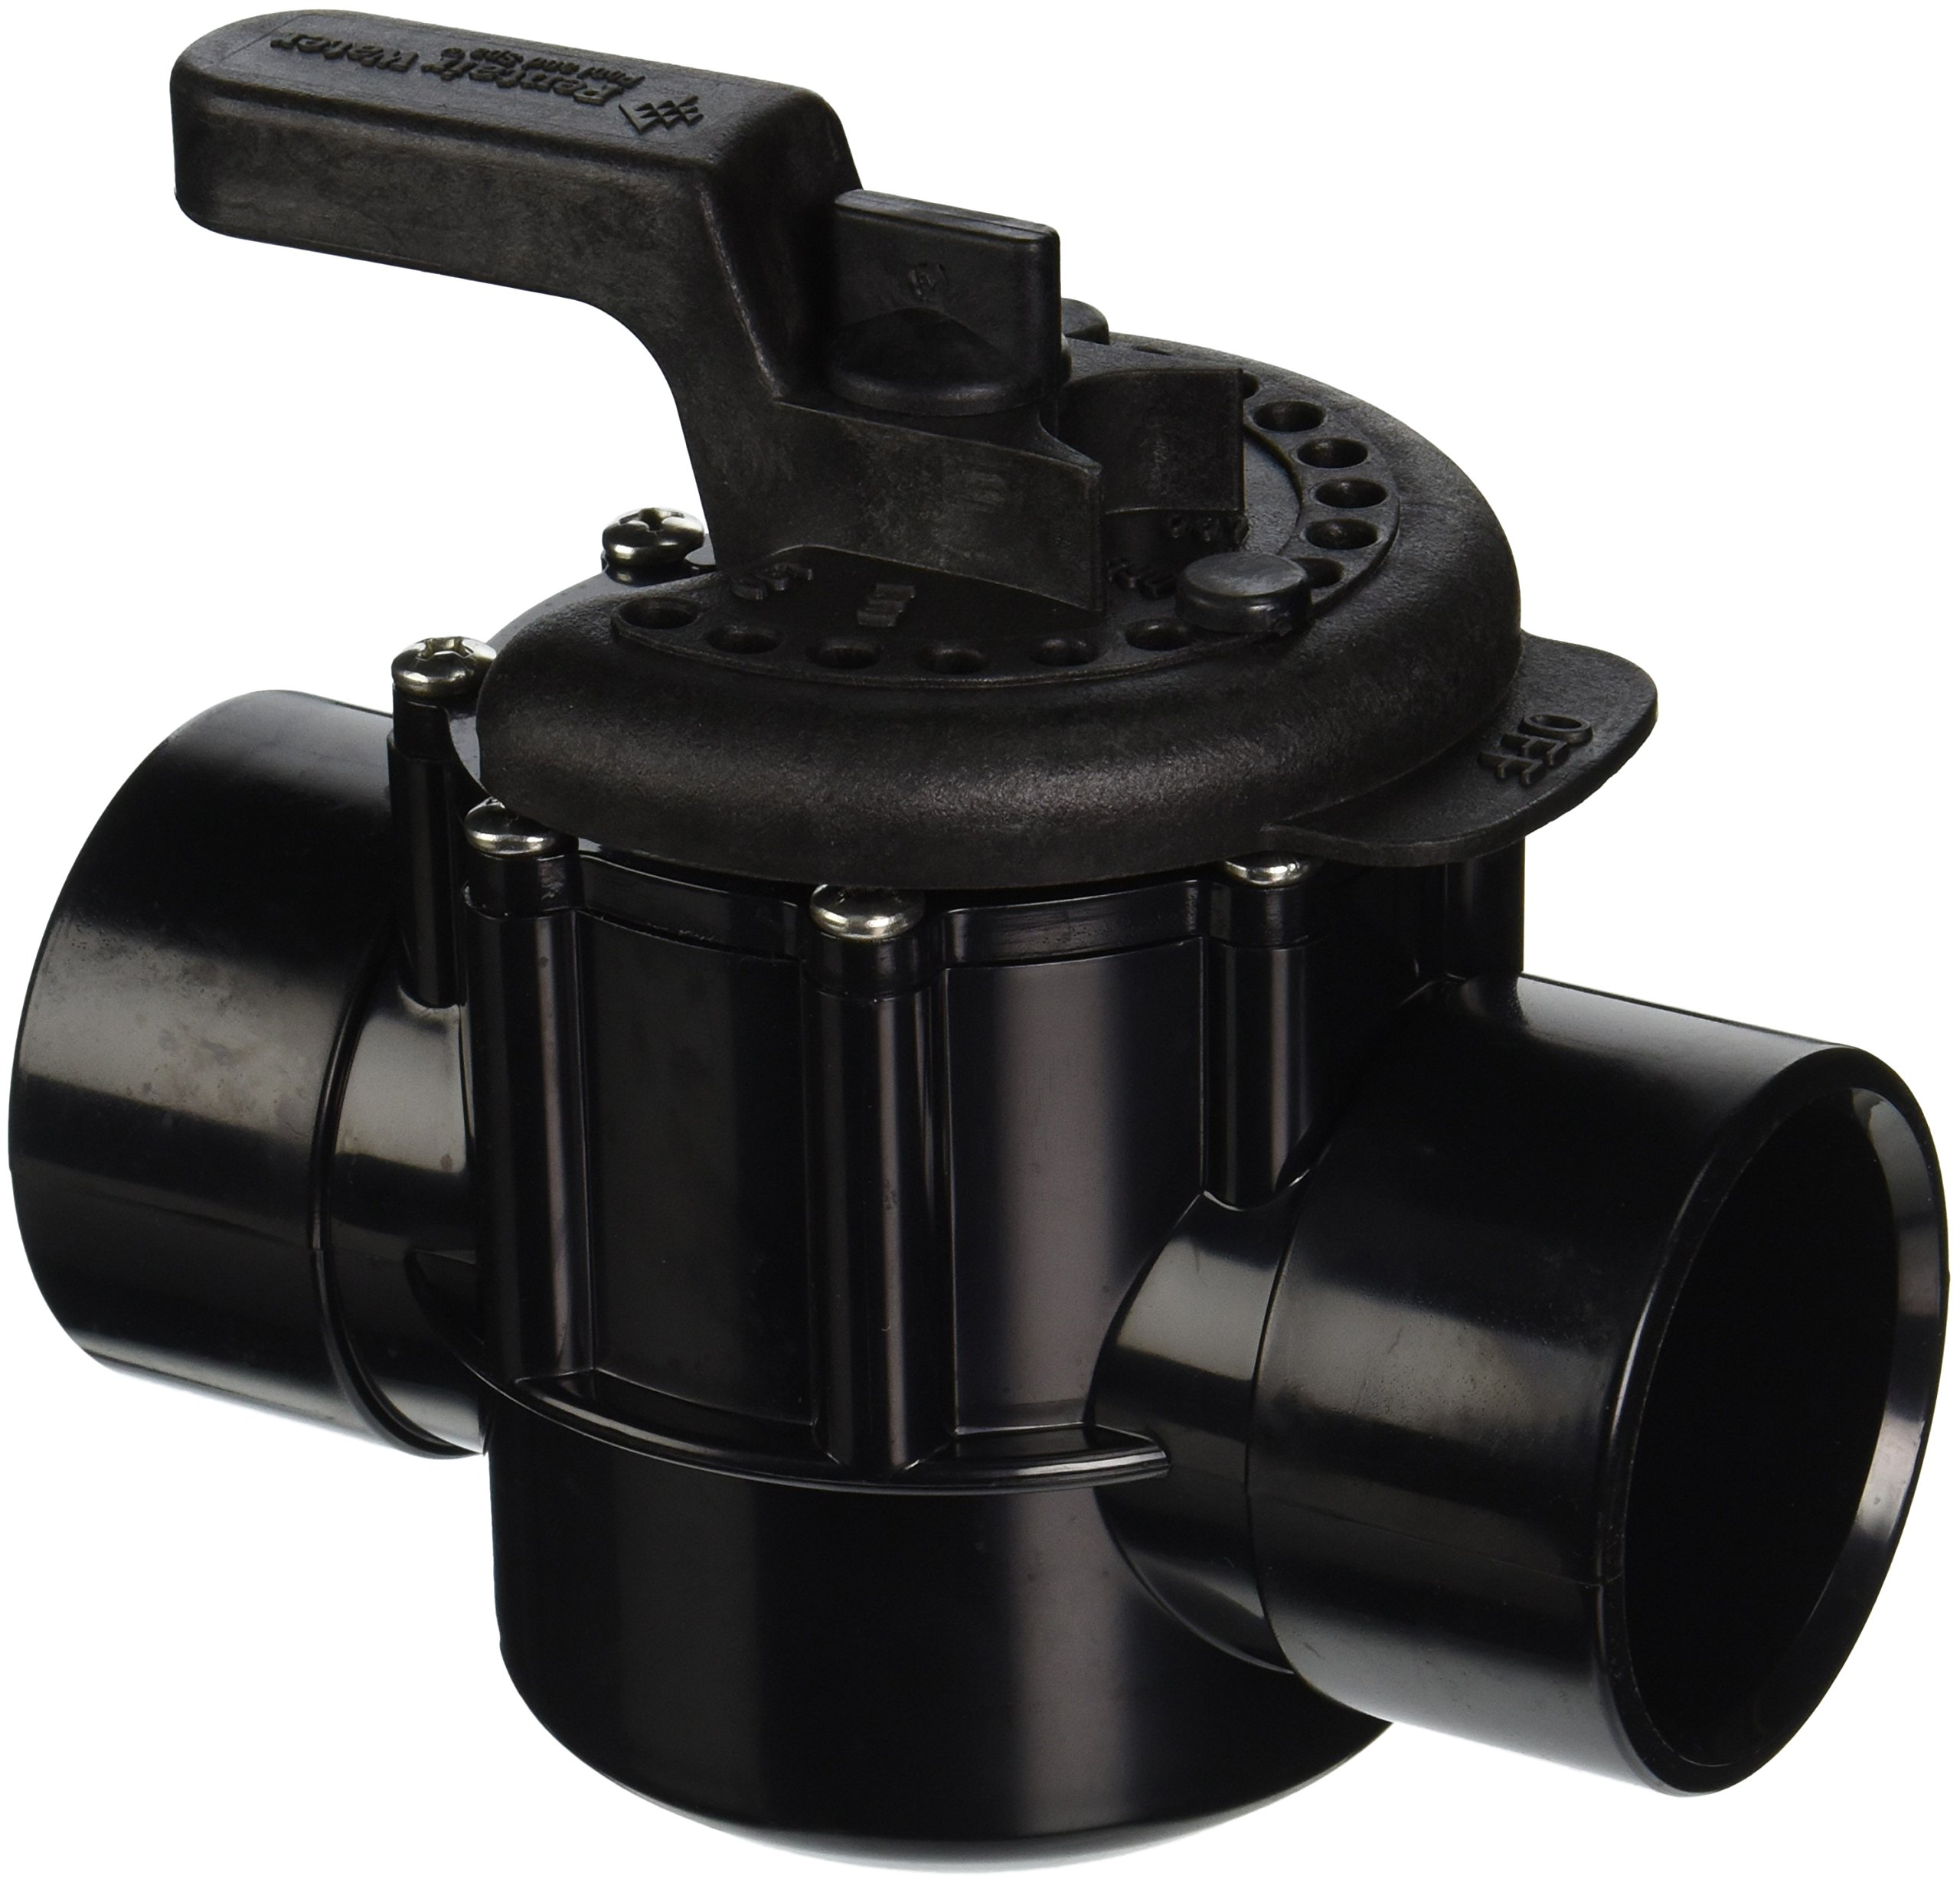 Pentair 263027 2-Inch 2-Way CPVC Diverter Valve by Pentair